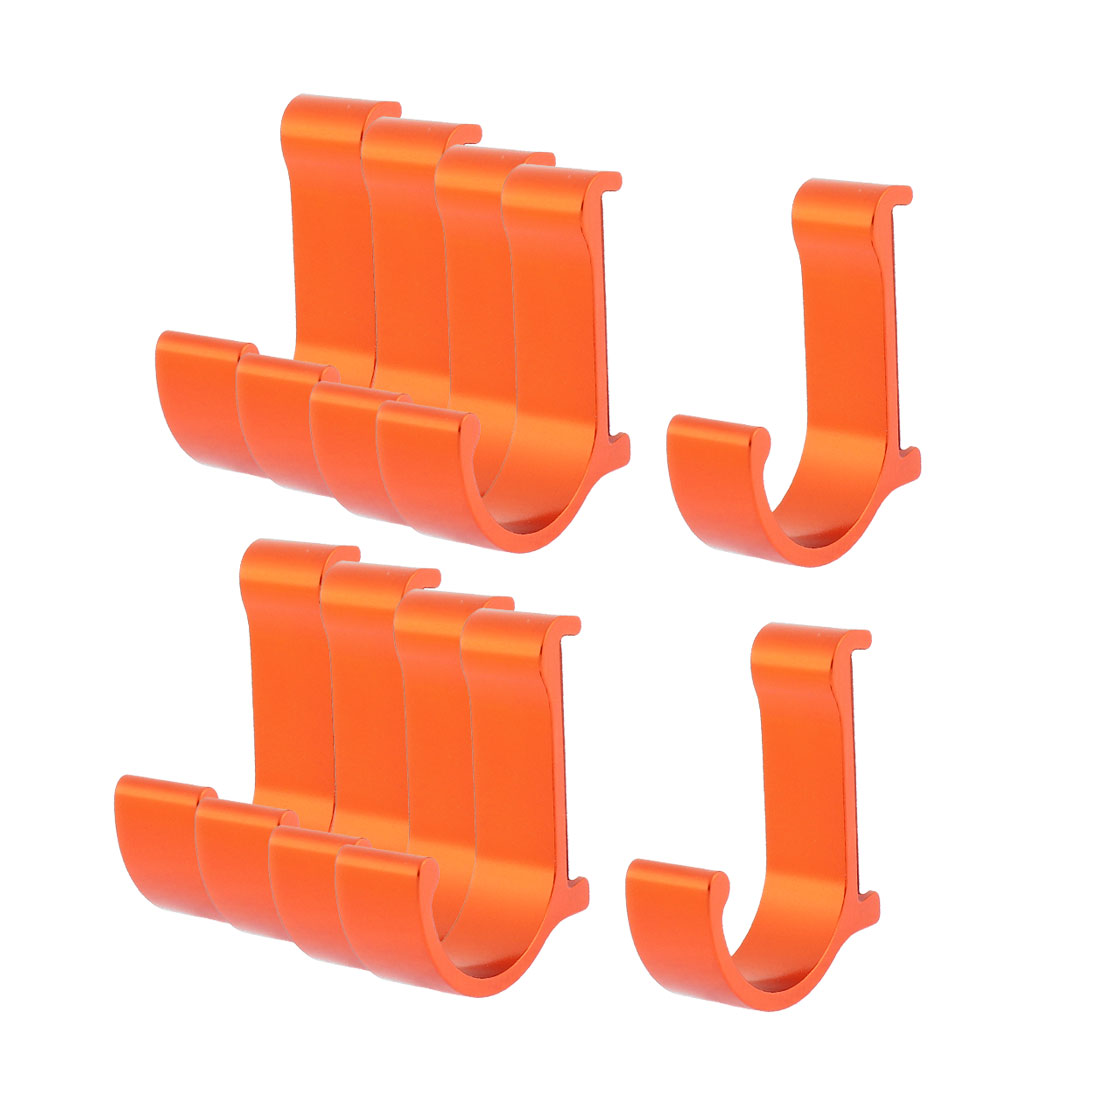 Bedroom Kitchen Clothes Hat Aluminum Wall Hanging Hook Hanger Orange Red 10pcs